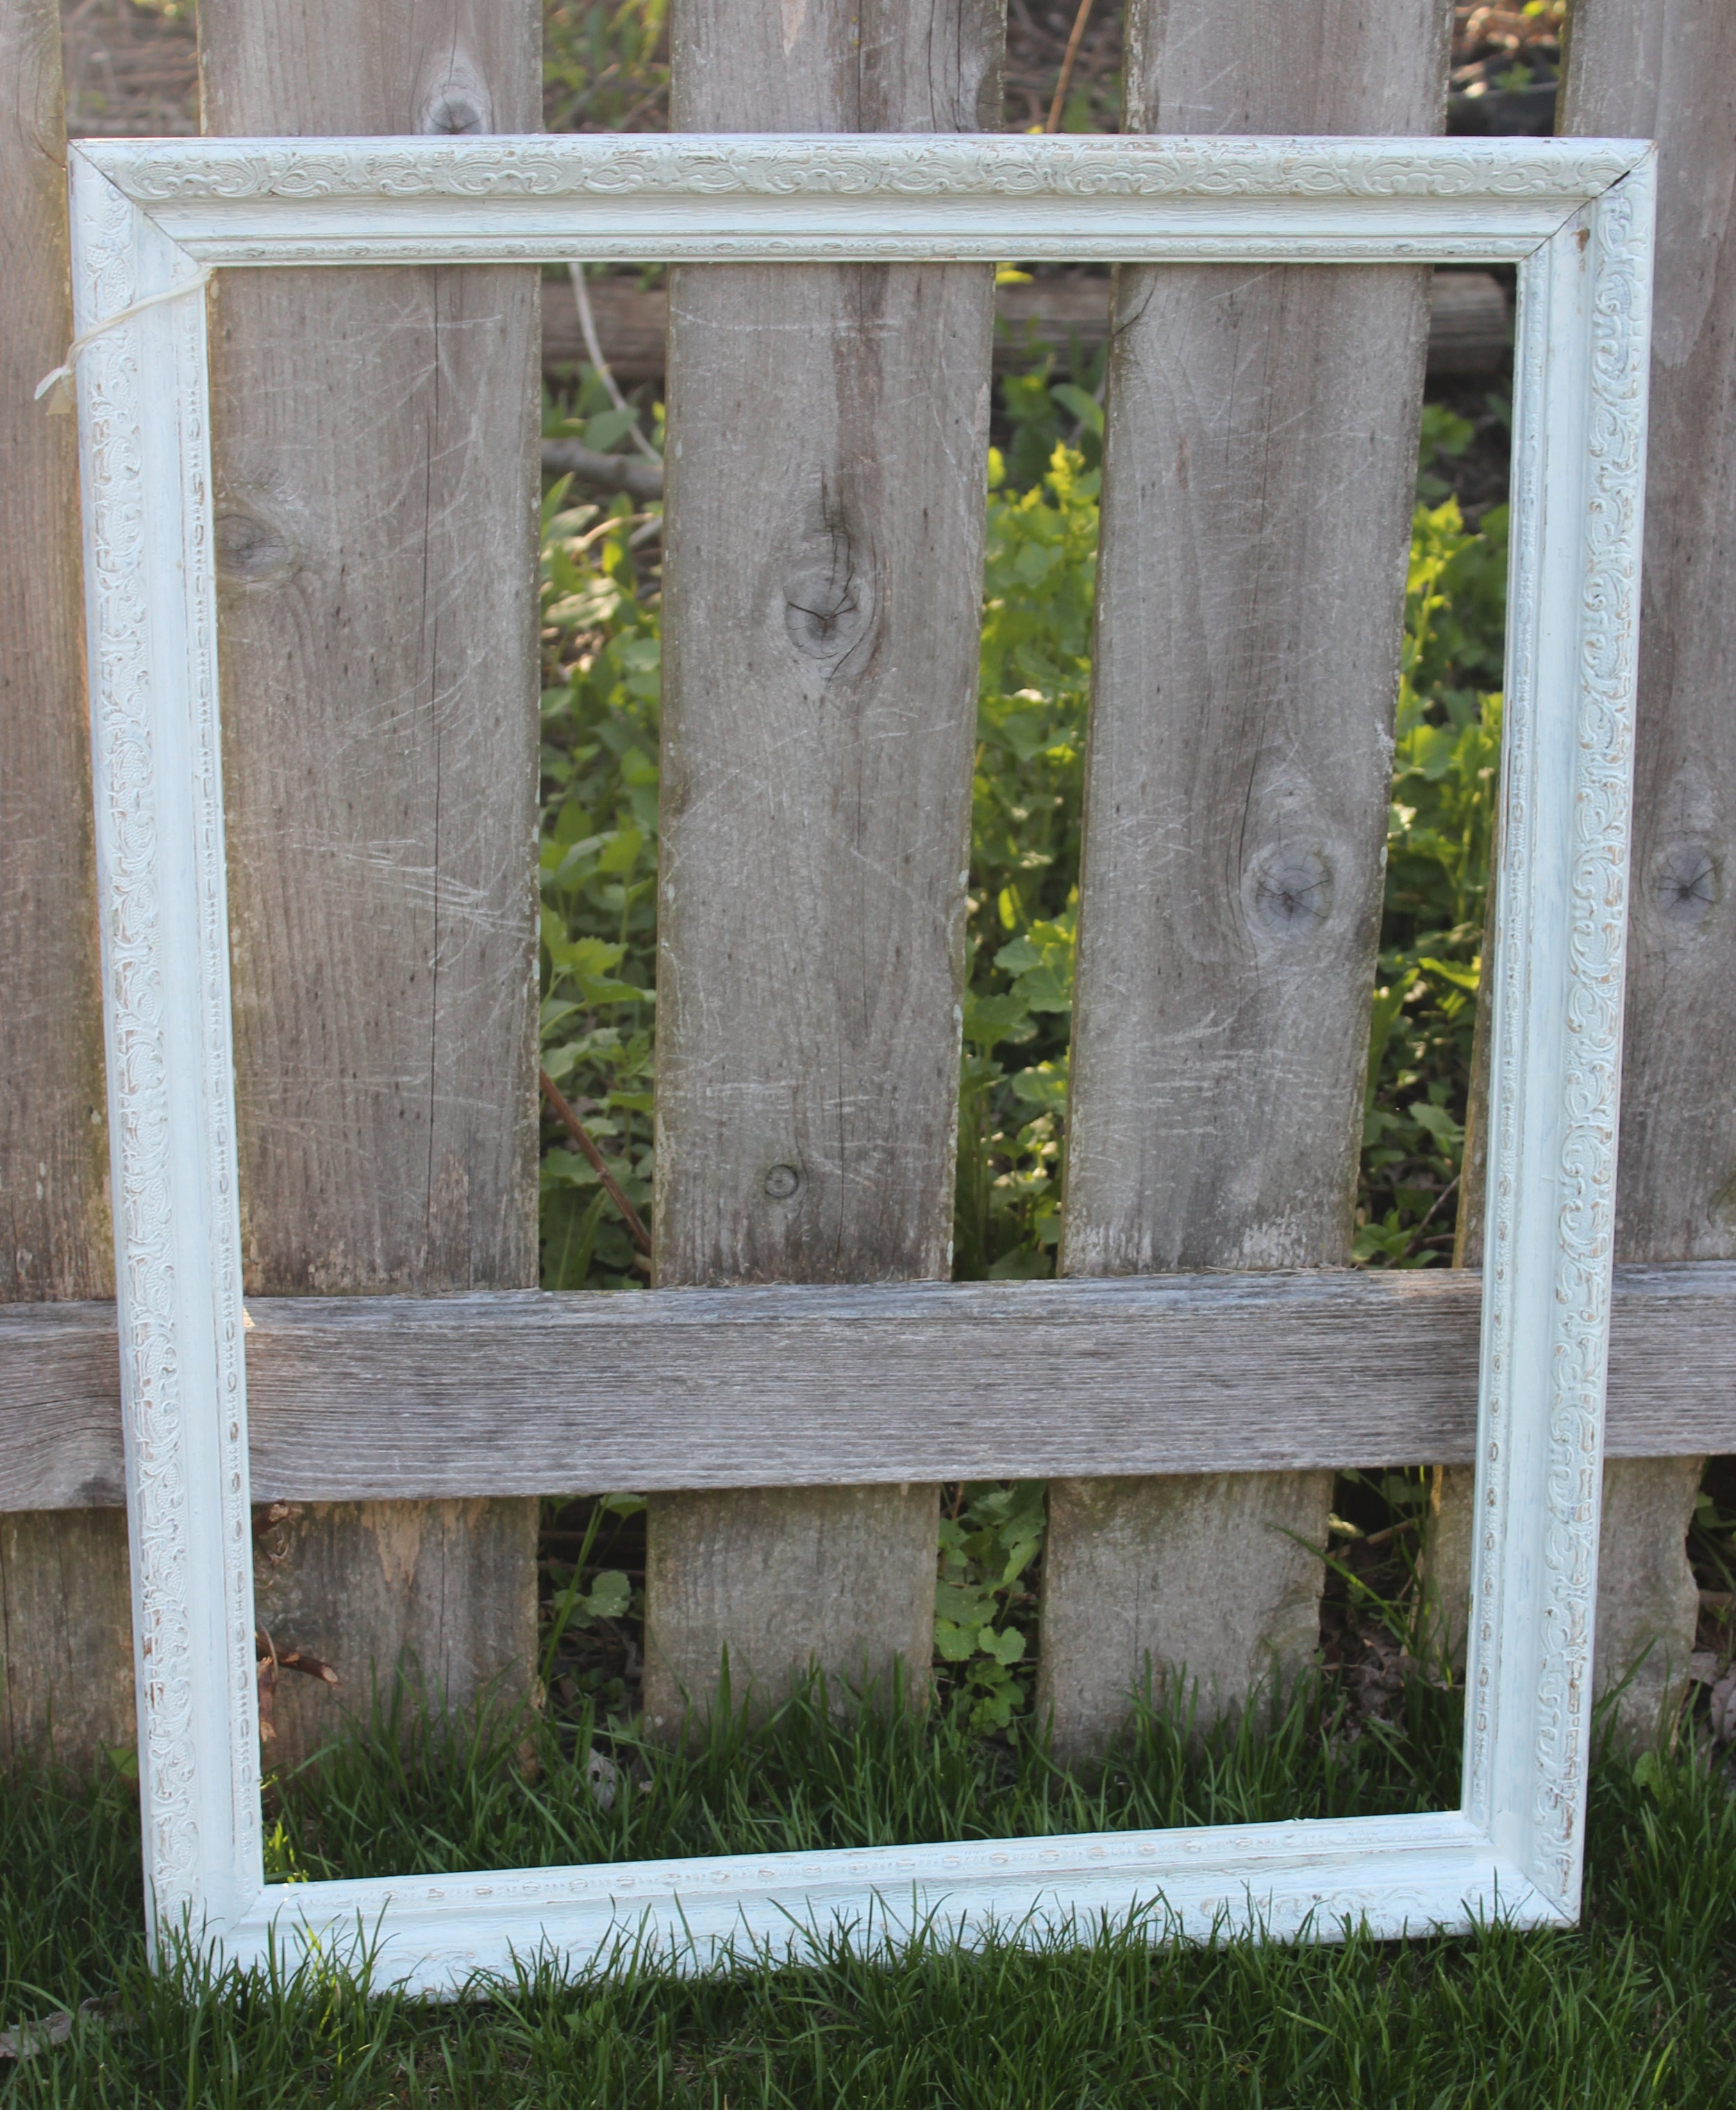 White Frame - 1.5ft W x 2.5ft H